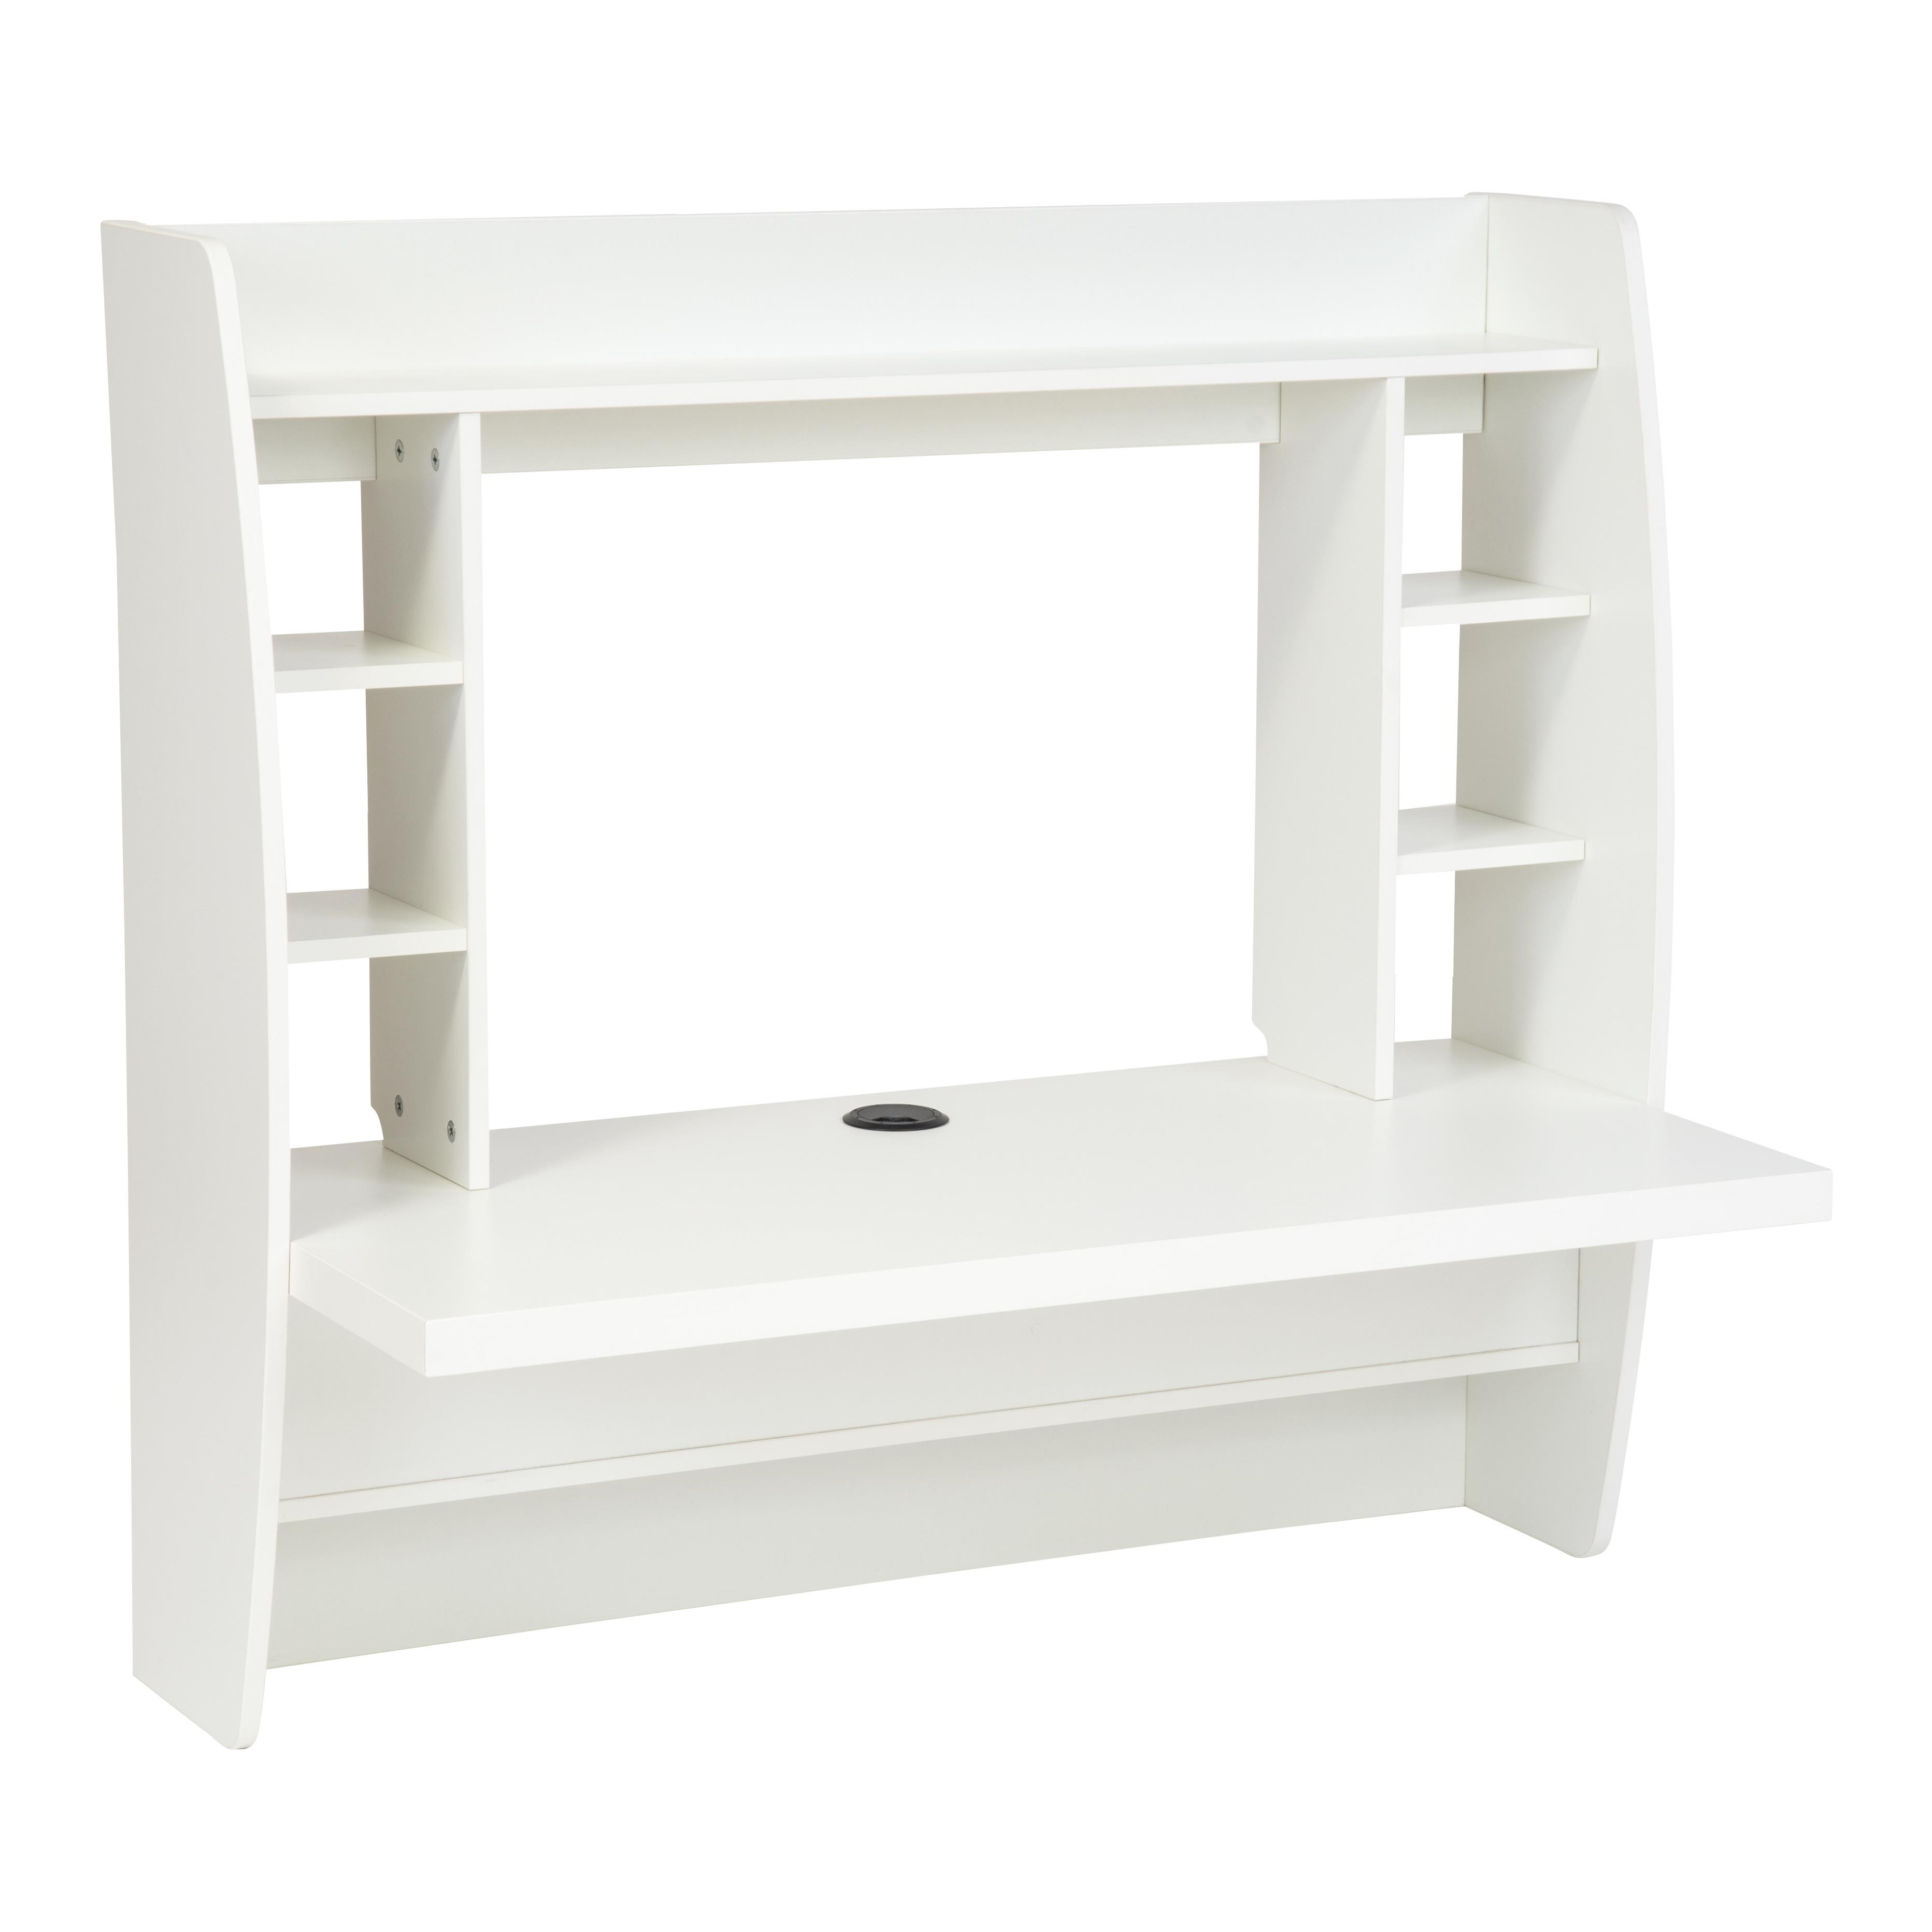 Details About Home Office Computer Desk Table Floating Wall Mount Desk W Storage Shelves White